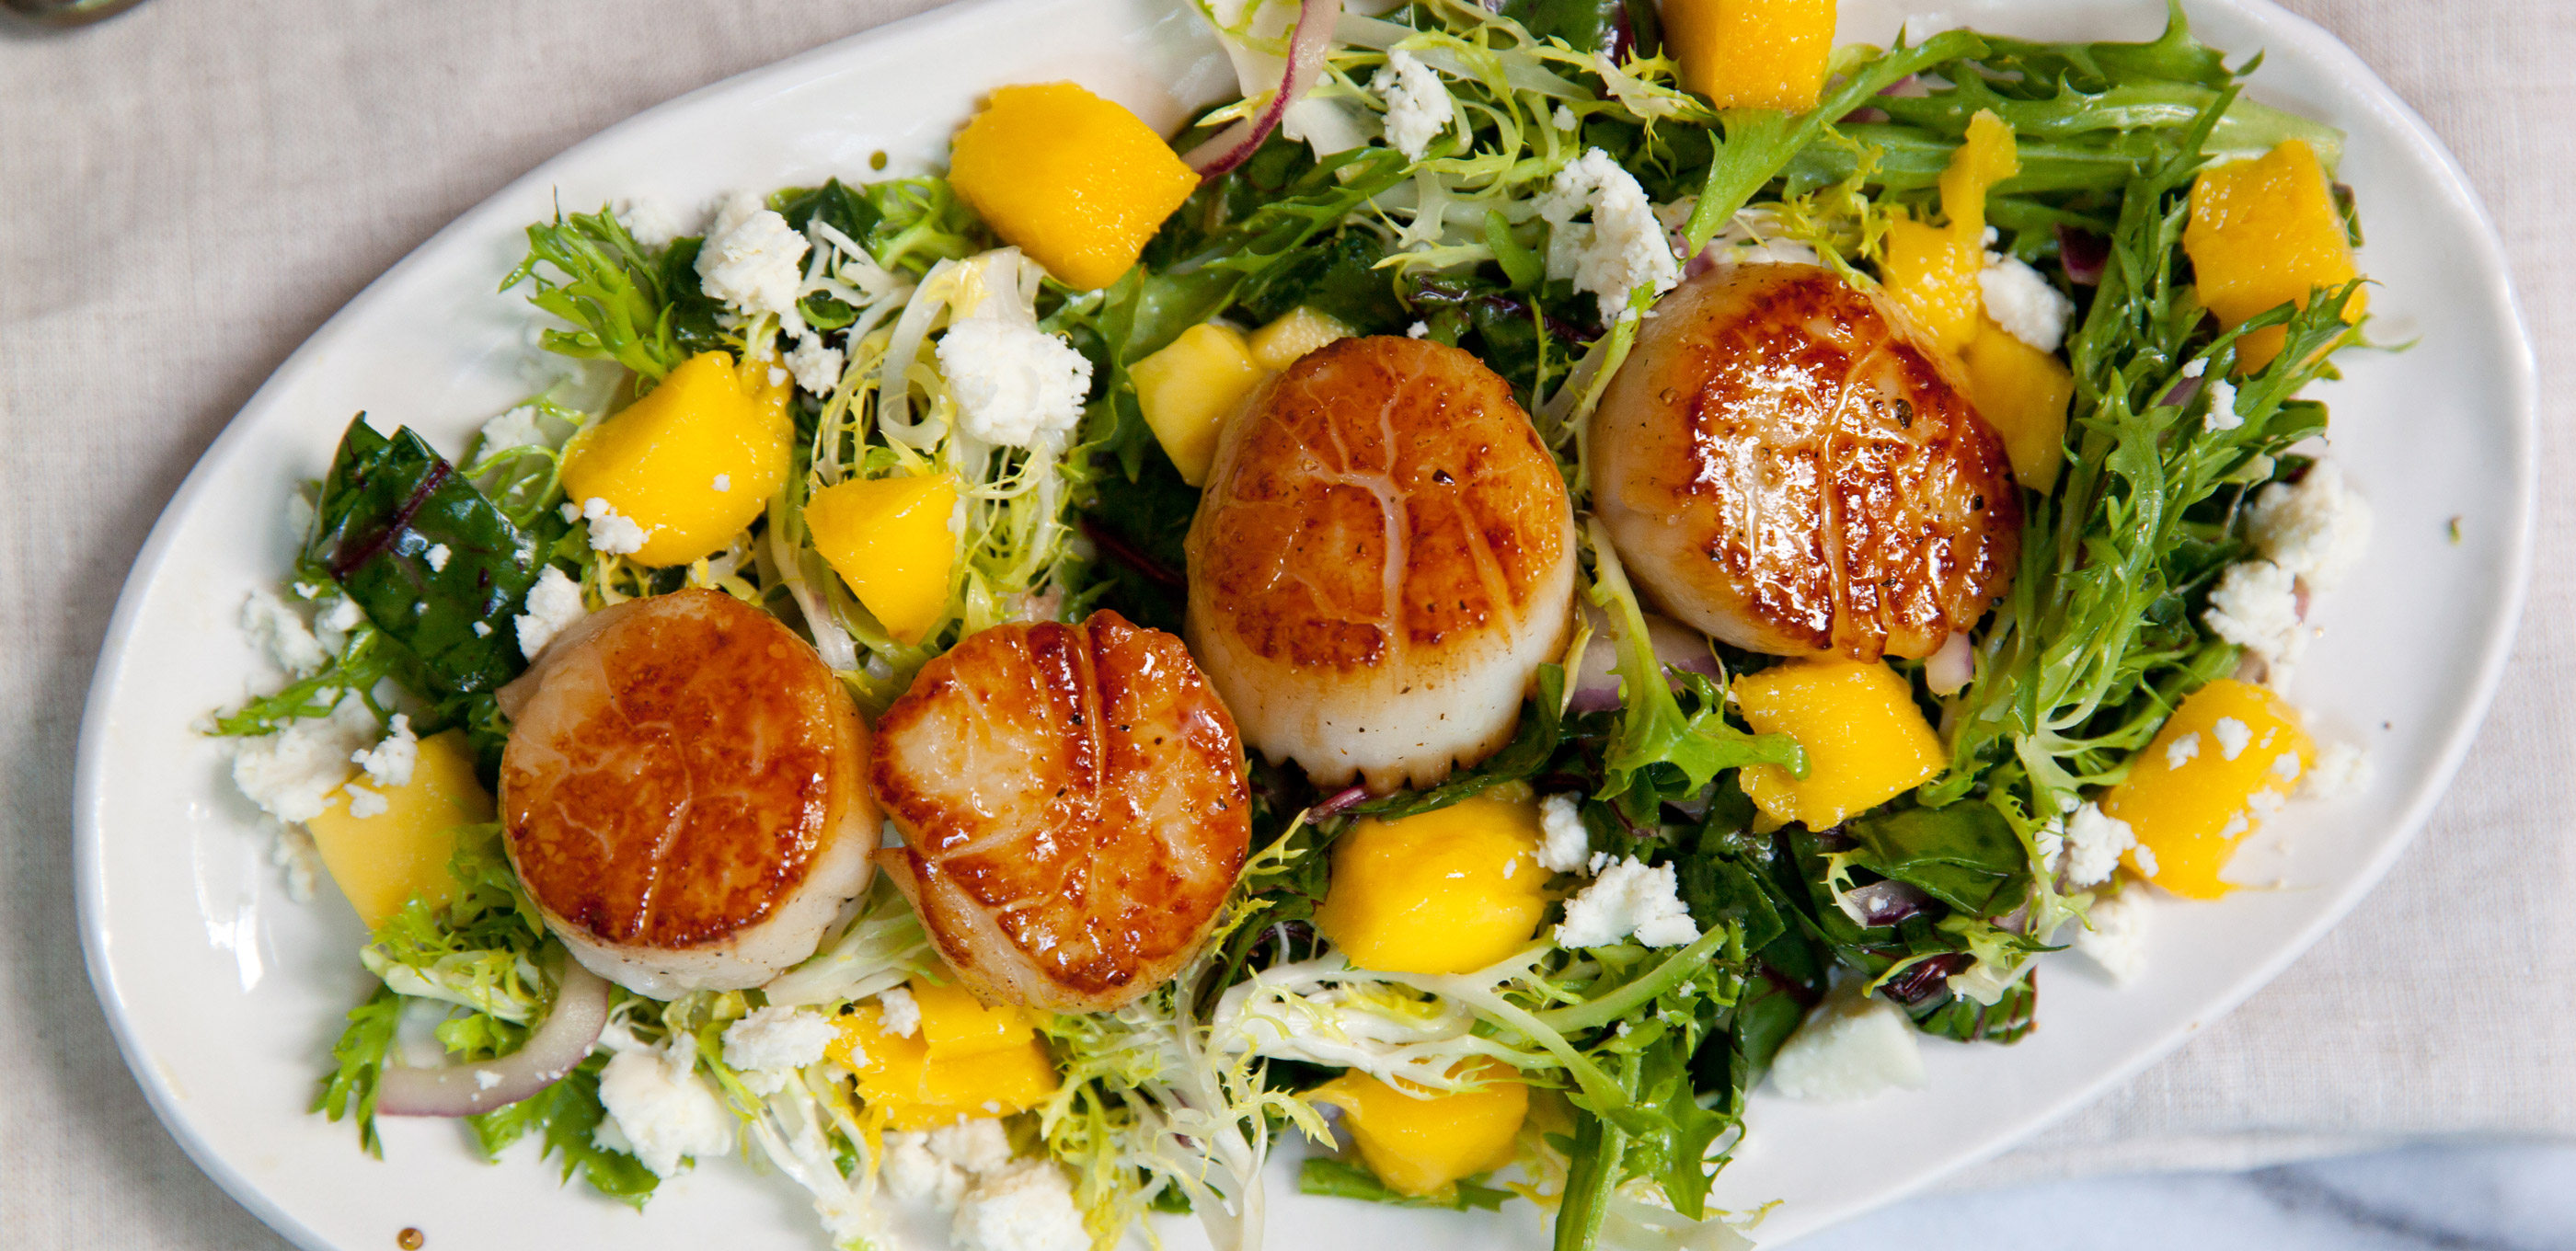 Can salad be sexy? This mango habanero salad with seared scallops says absolutely.